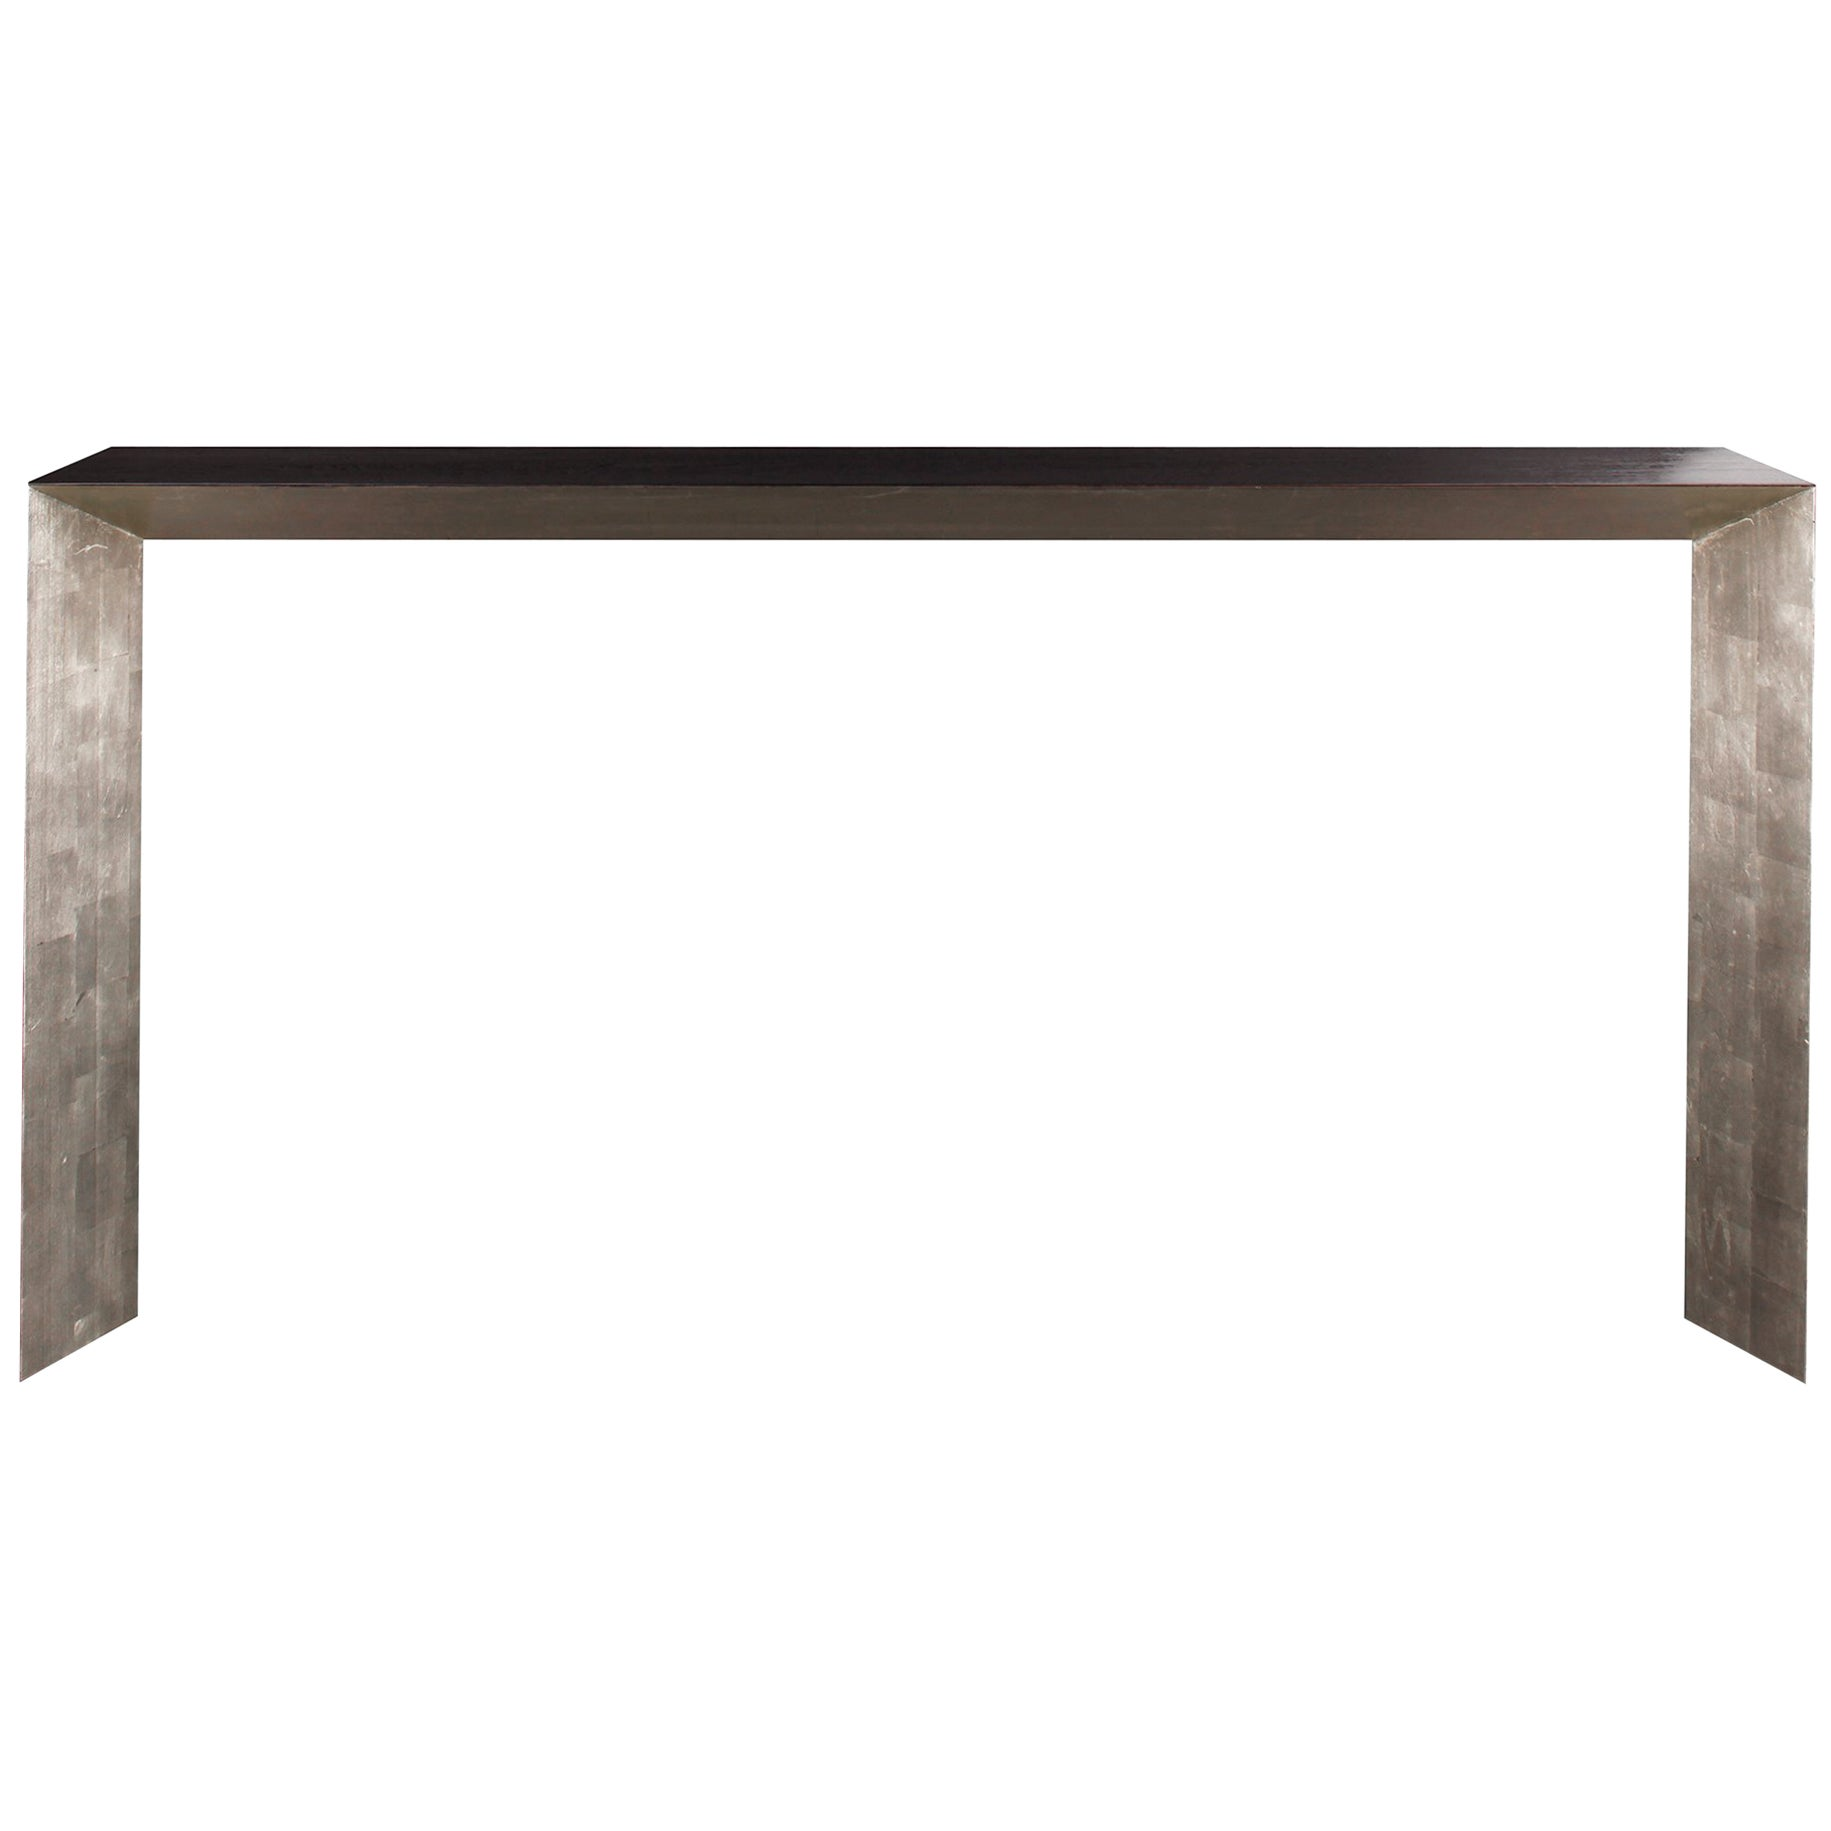 """Phantom"" Console Table by Designer/Artist Florian Roeper"